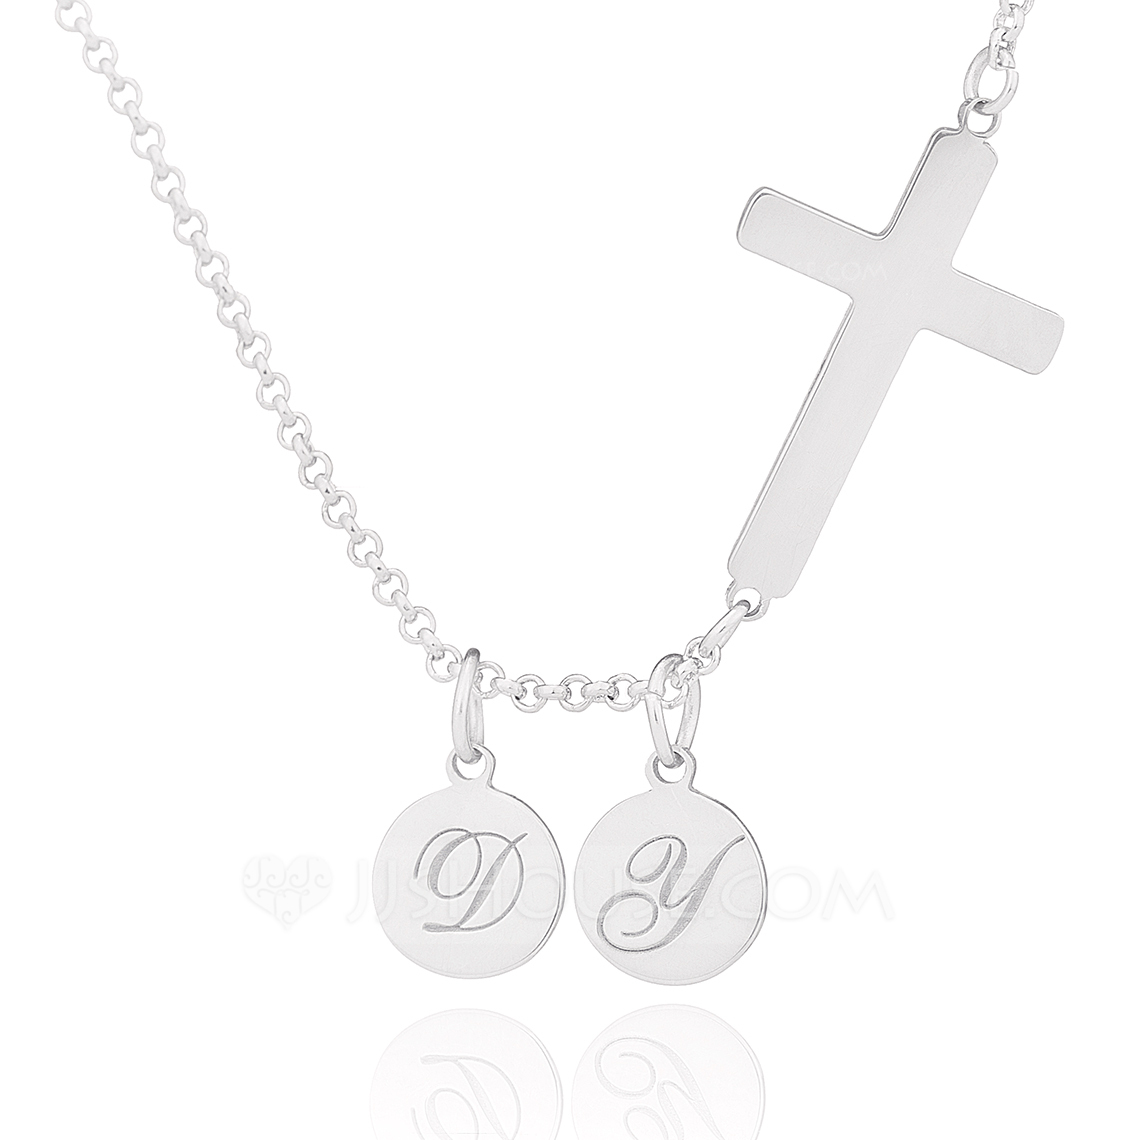 Custom Sterling Silver Religious Cross Circle Two Initial Necklace - Christmas Gifts